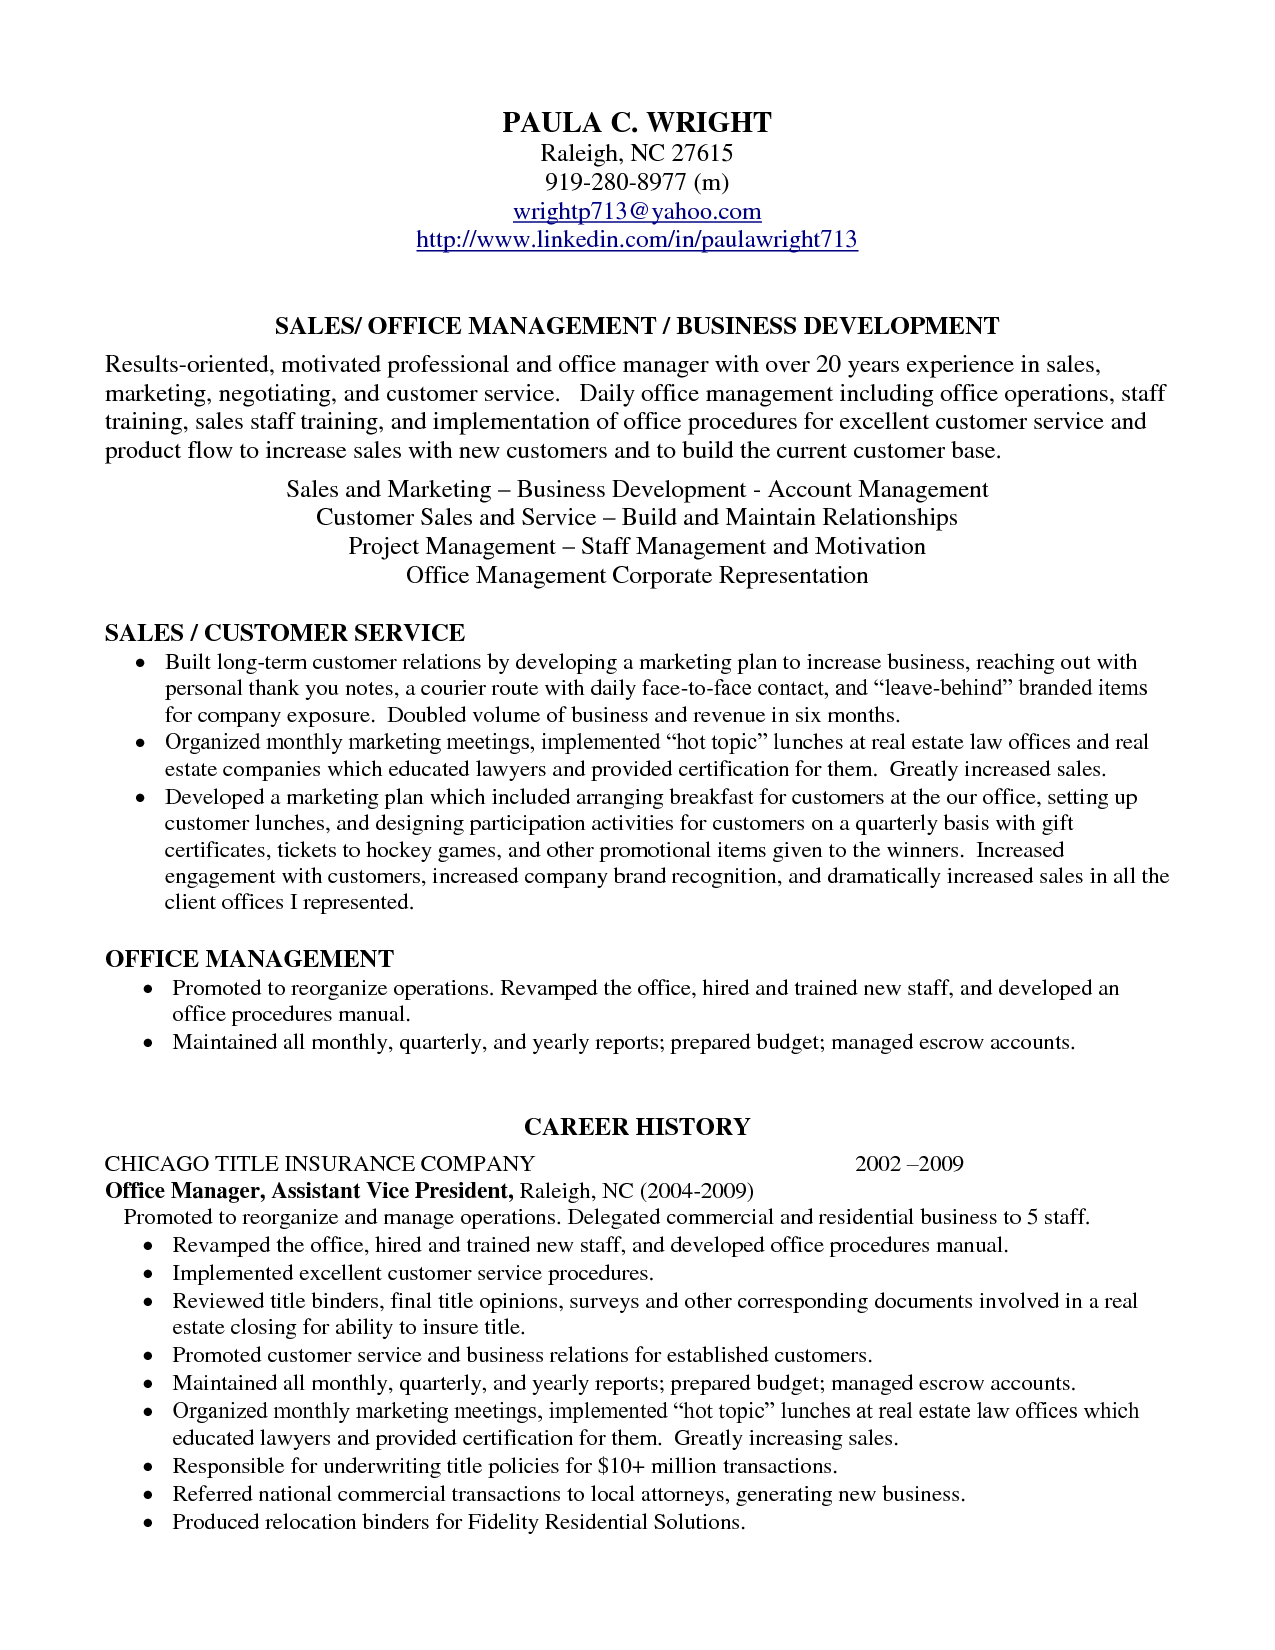 Professional Marketing Resume Sample Manager  Resume Examples Marketing